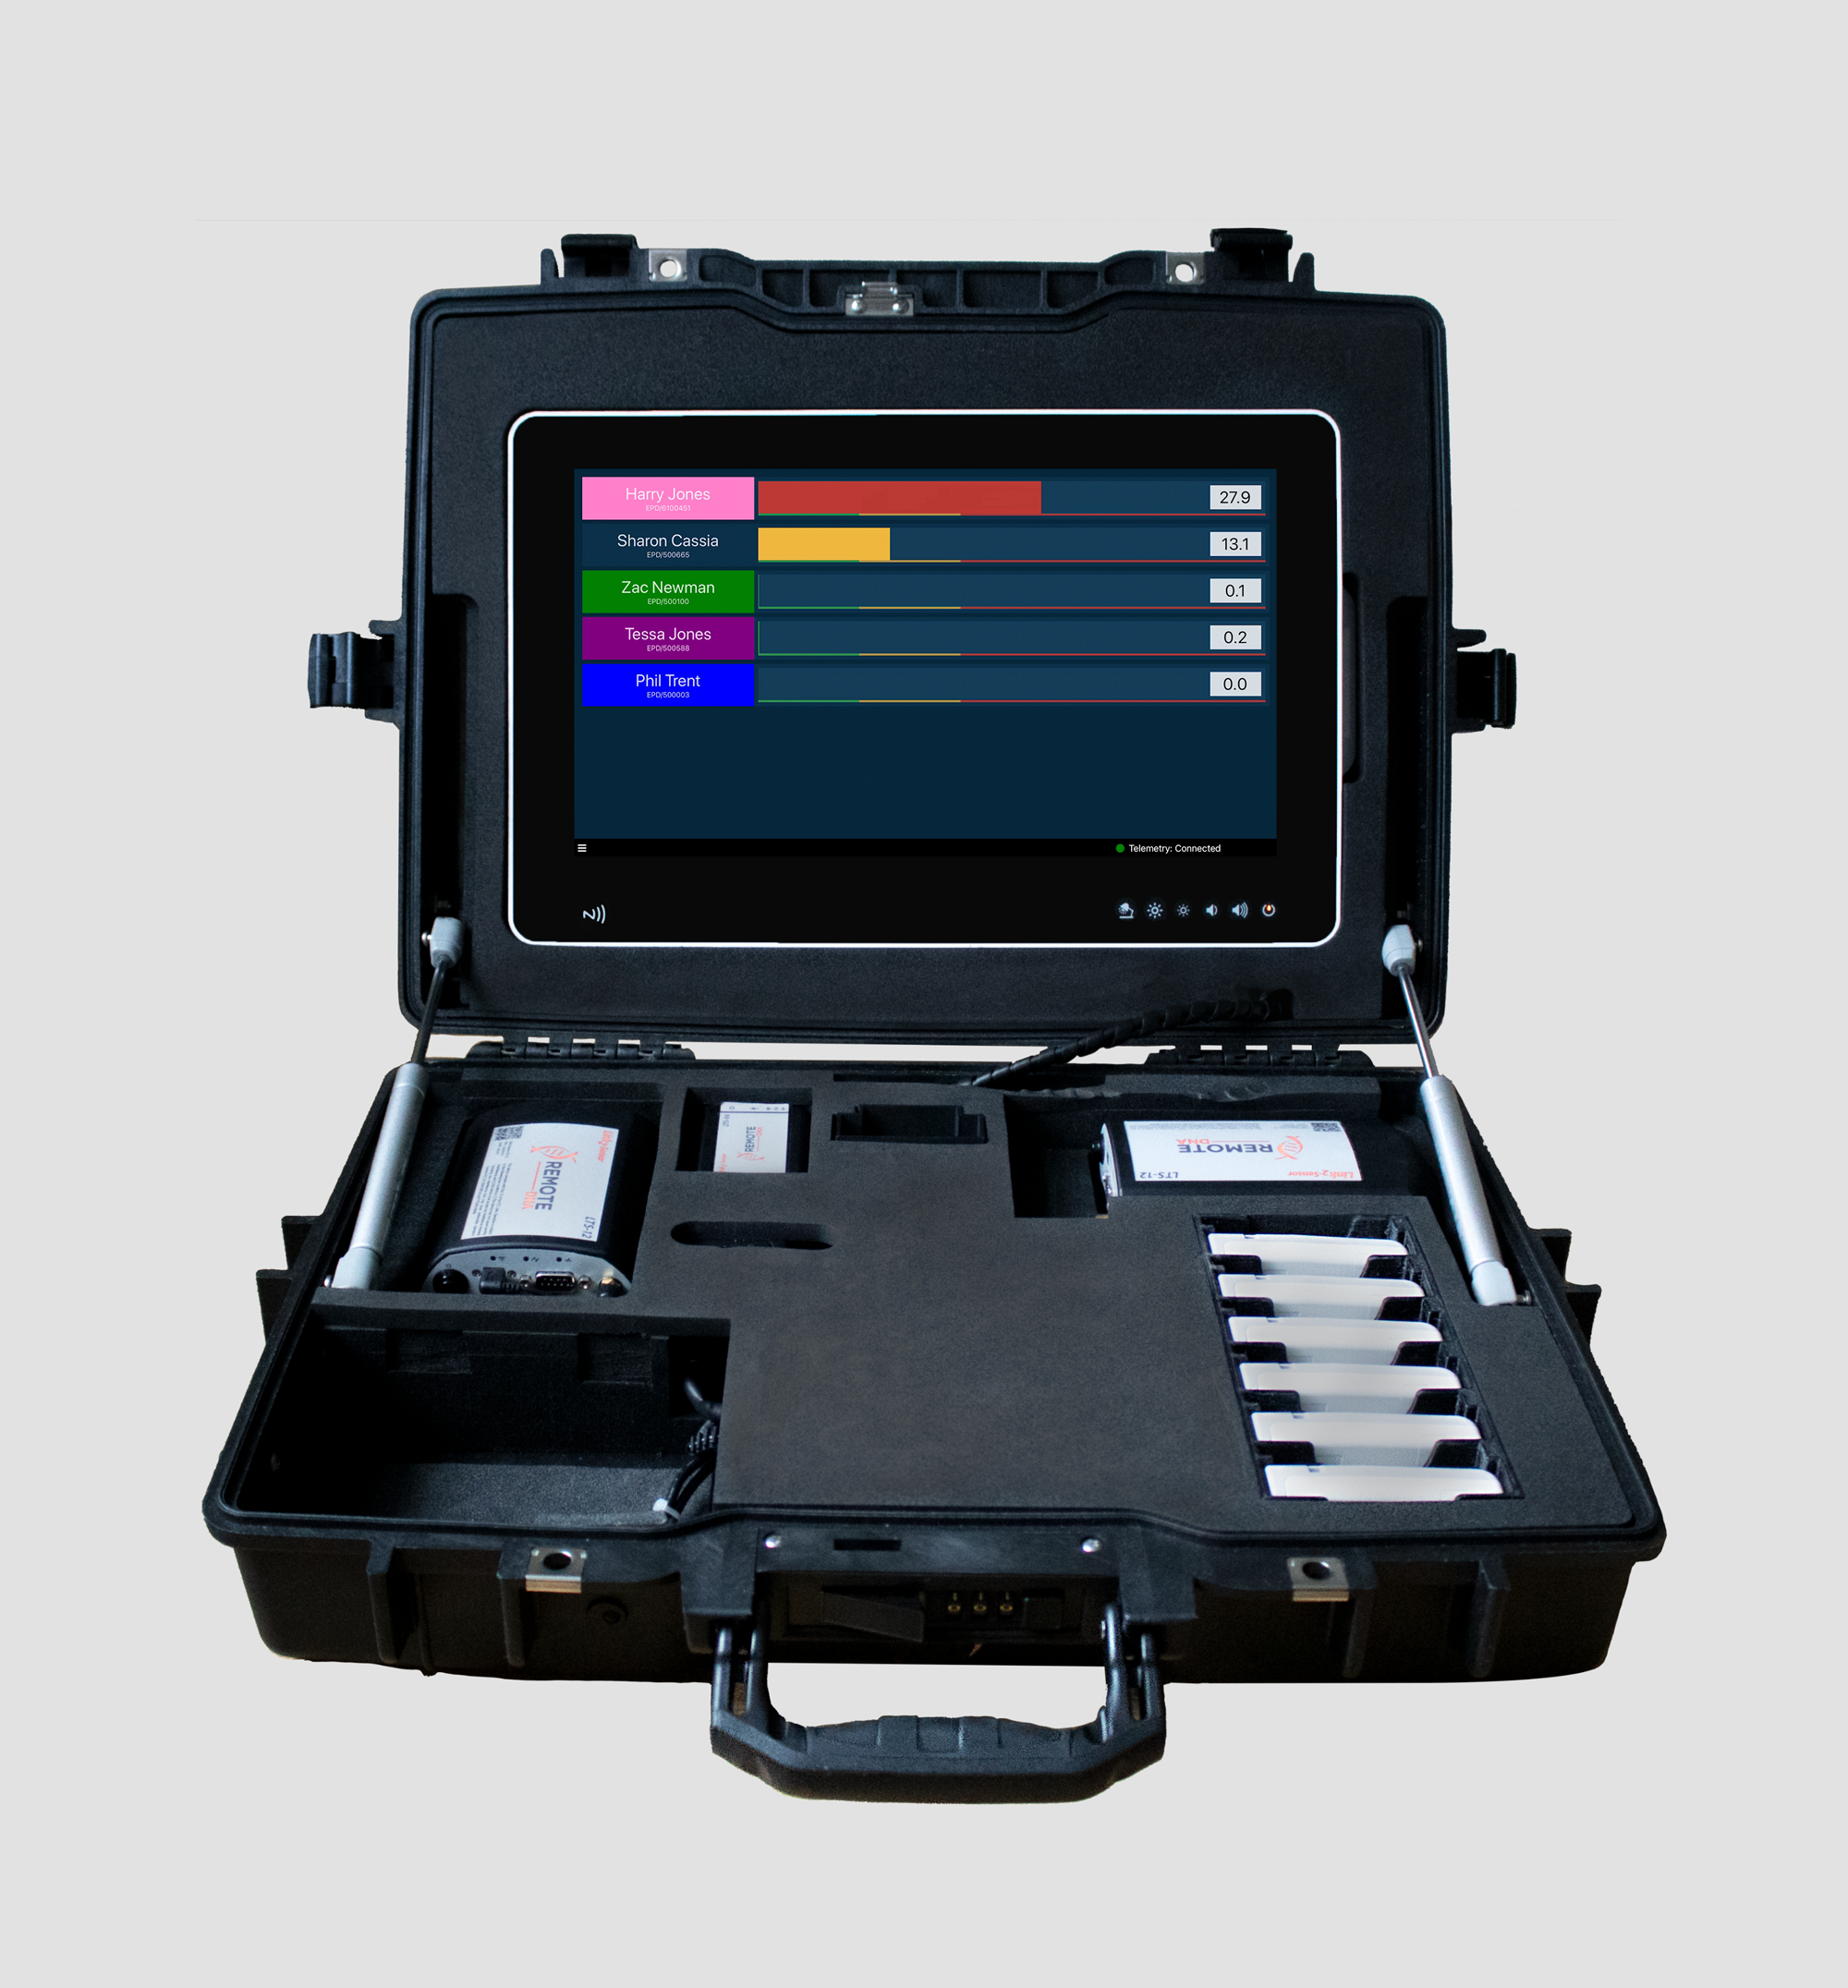 "RADSAT Complete self-contained system with: - - 15"" touch-screen screen with alarm indicators- Tough Pelican case for transport, deployment and storage- Integral radios and EPD storage- RadSightLive software"